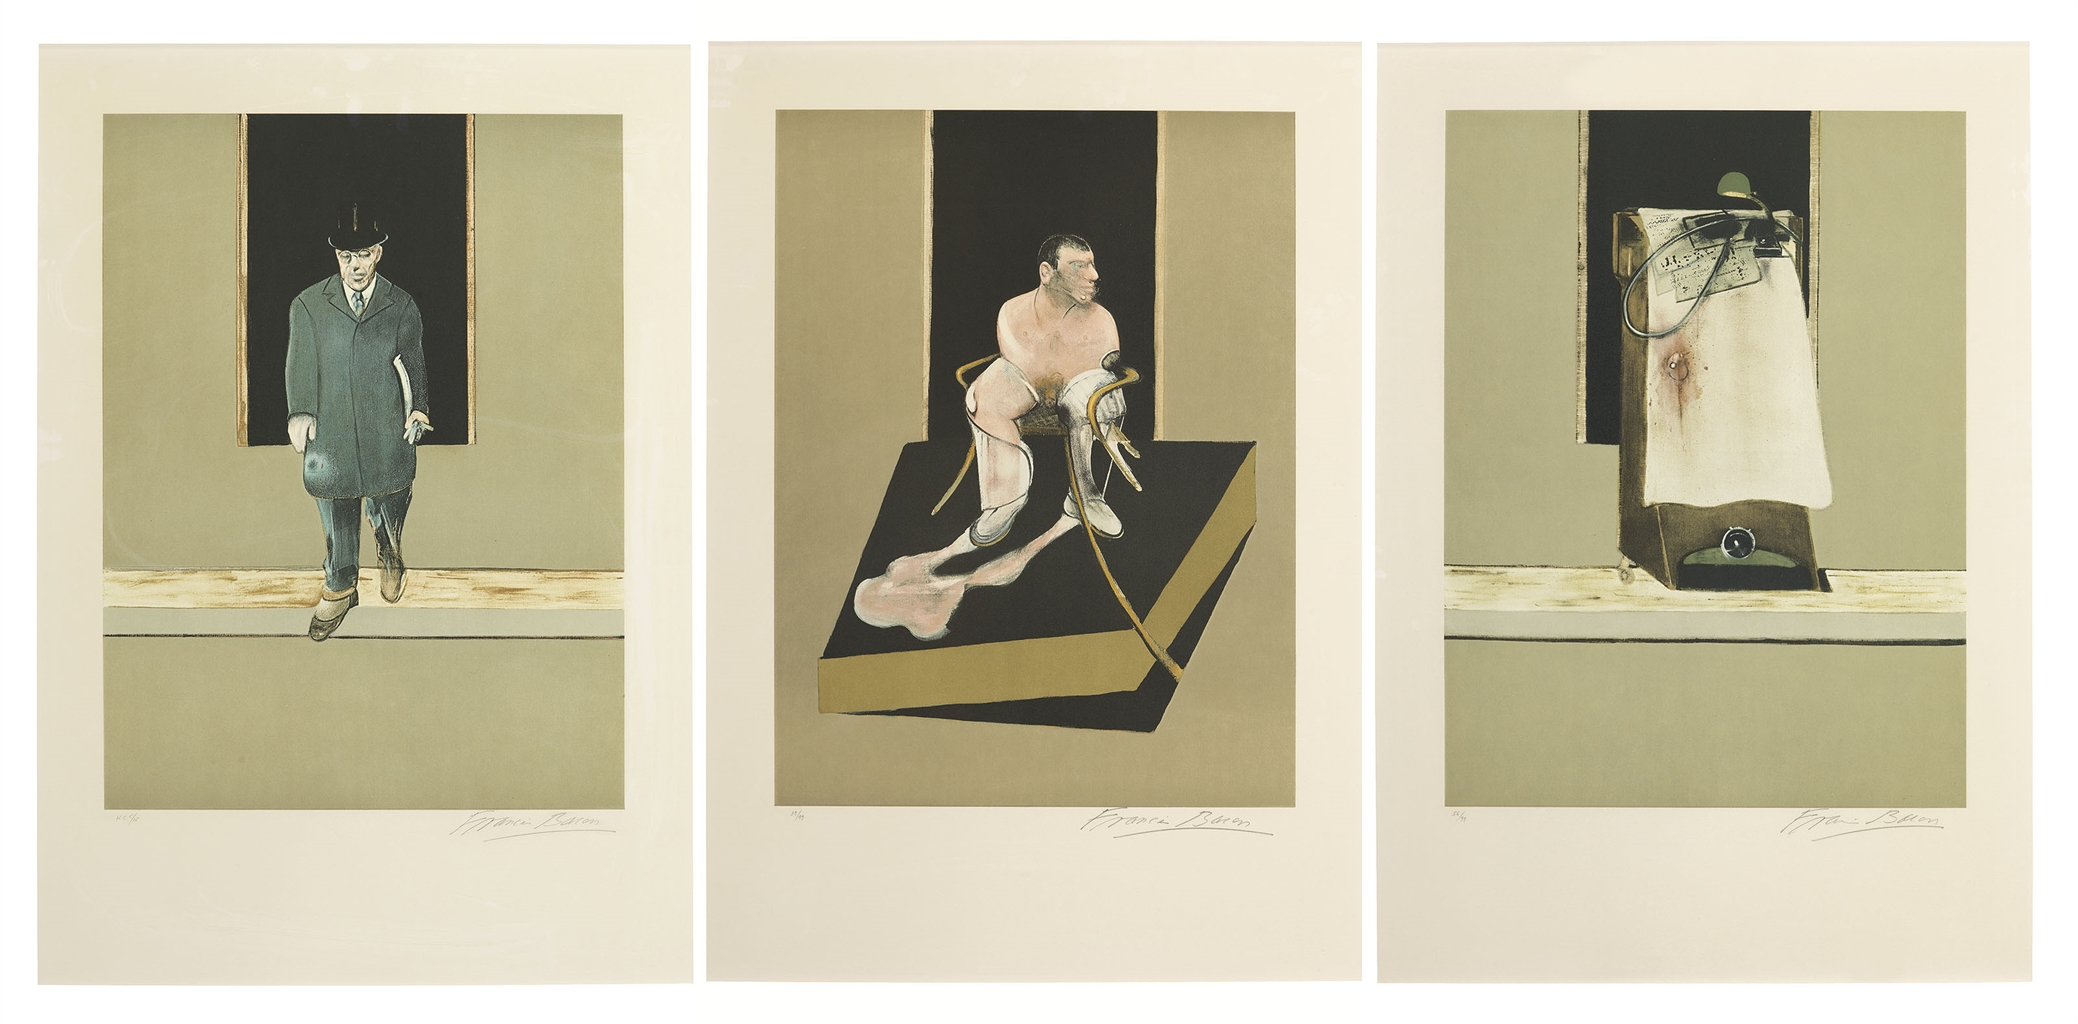 Francis Bacon-Triptych 1986-1987-1987